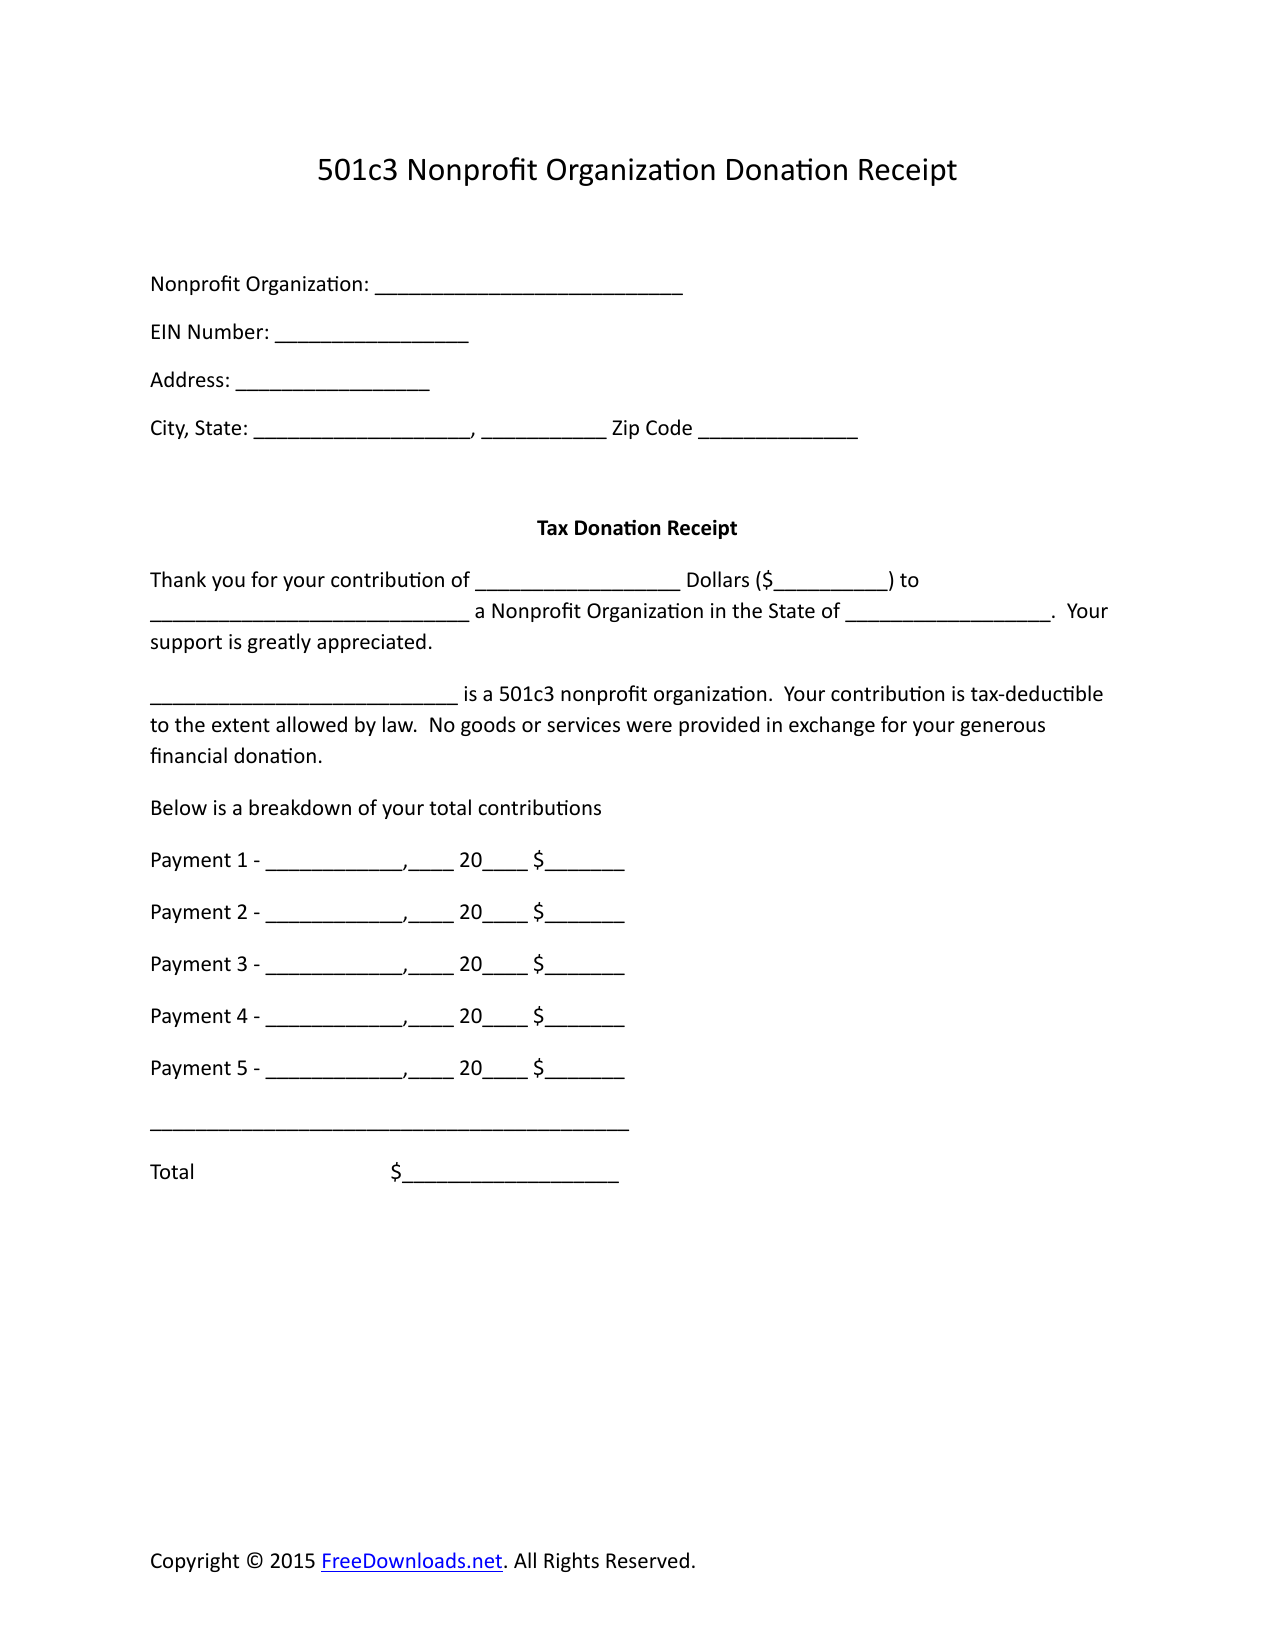 donation receipt letter for tax purposes 501c3 donation receipt letter for tax purposes 21402 | 501c3 Nonprofit Organization Donation Receipt Template.pdf